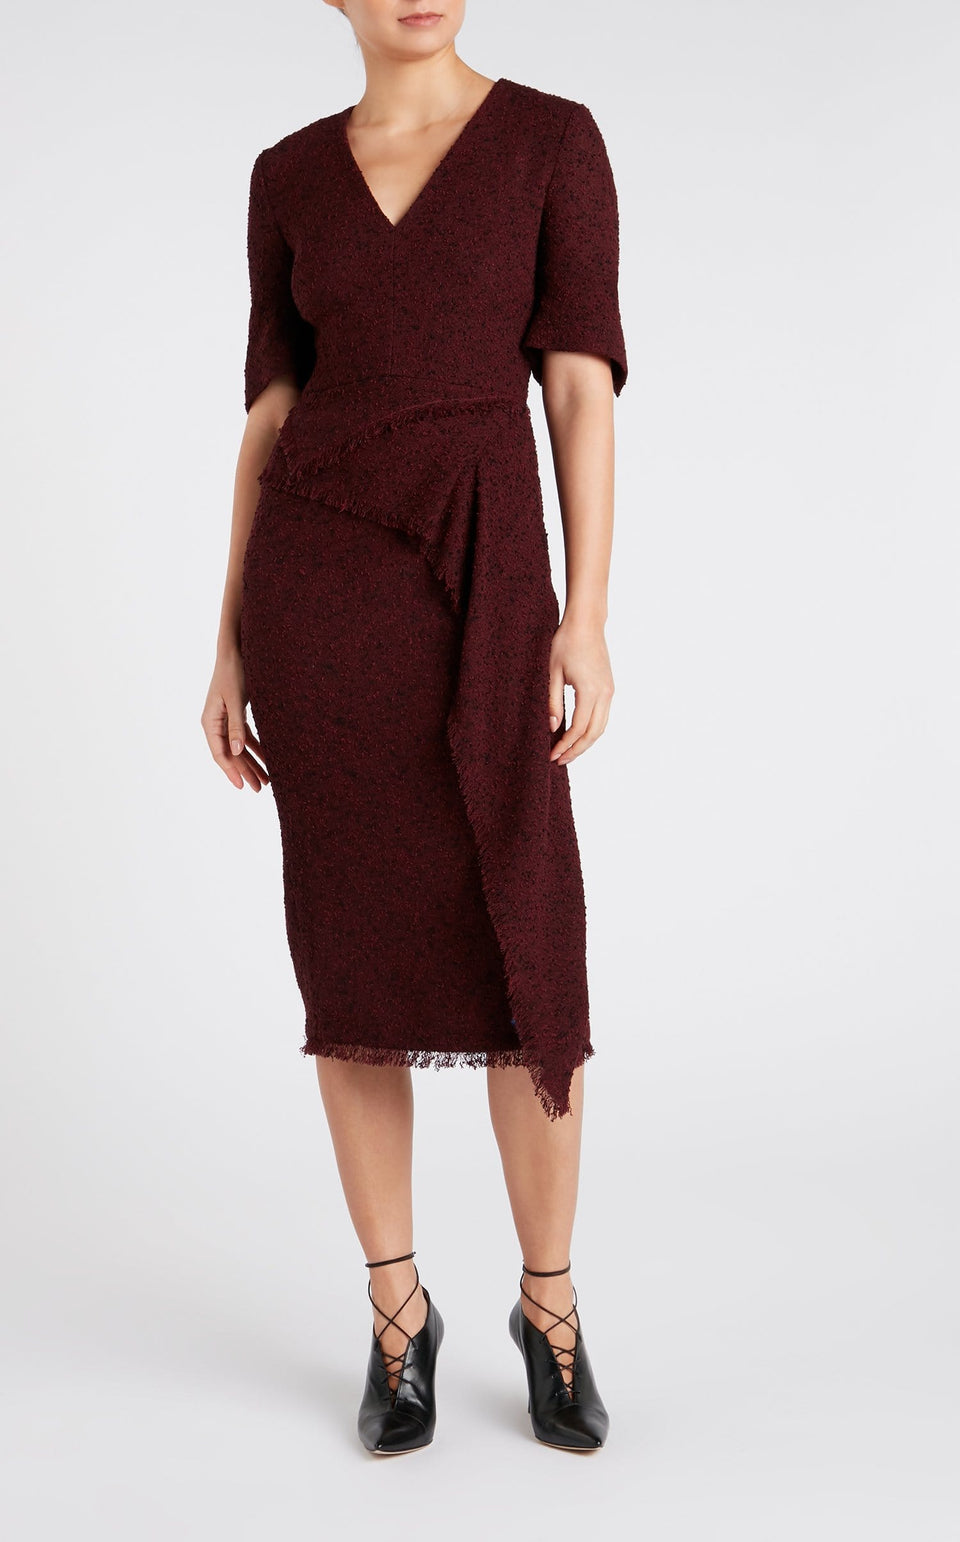 Marengo Dress